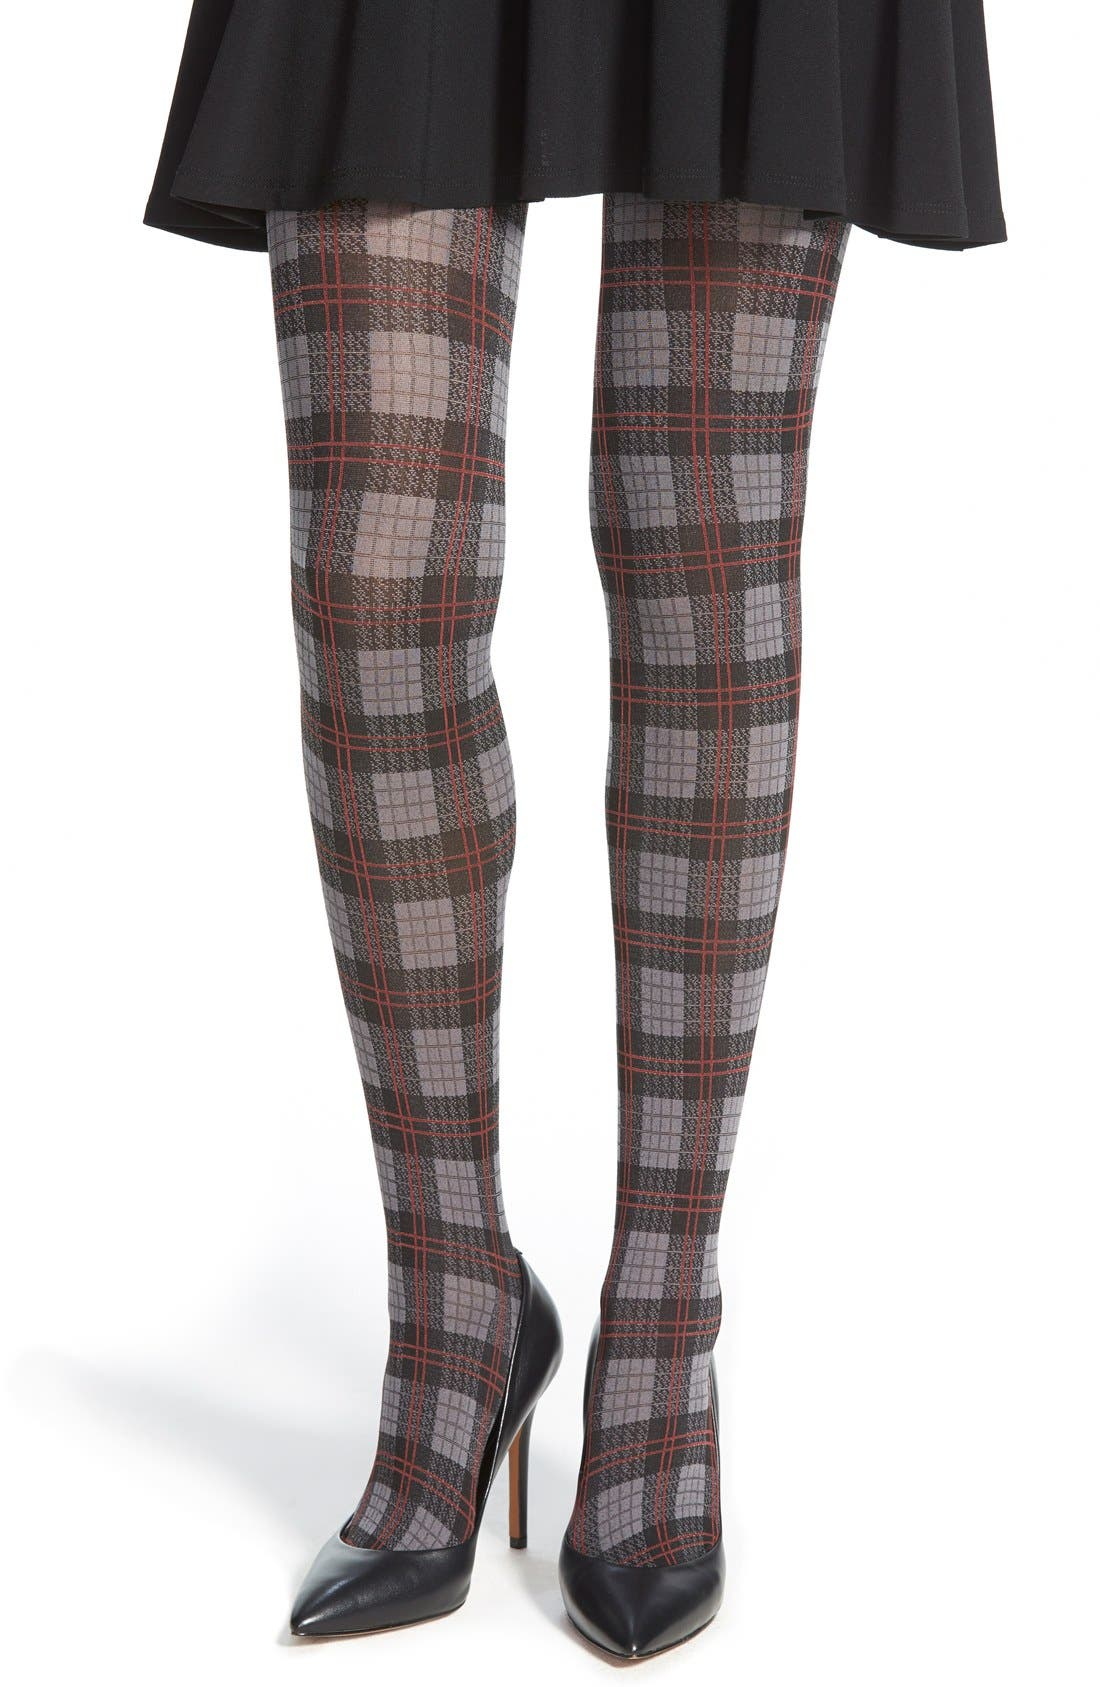 Alternate Image 1 Selected - Hue 'English Plaid' Control Top Opaque Tights